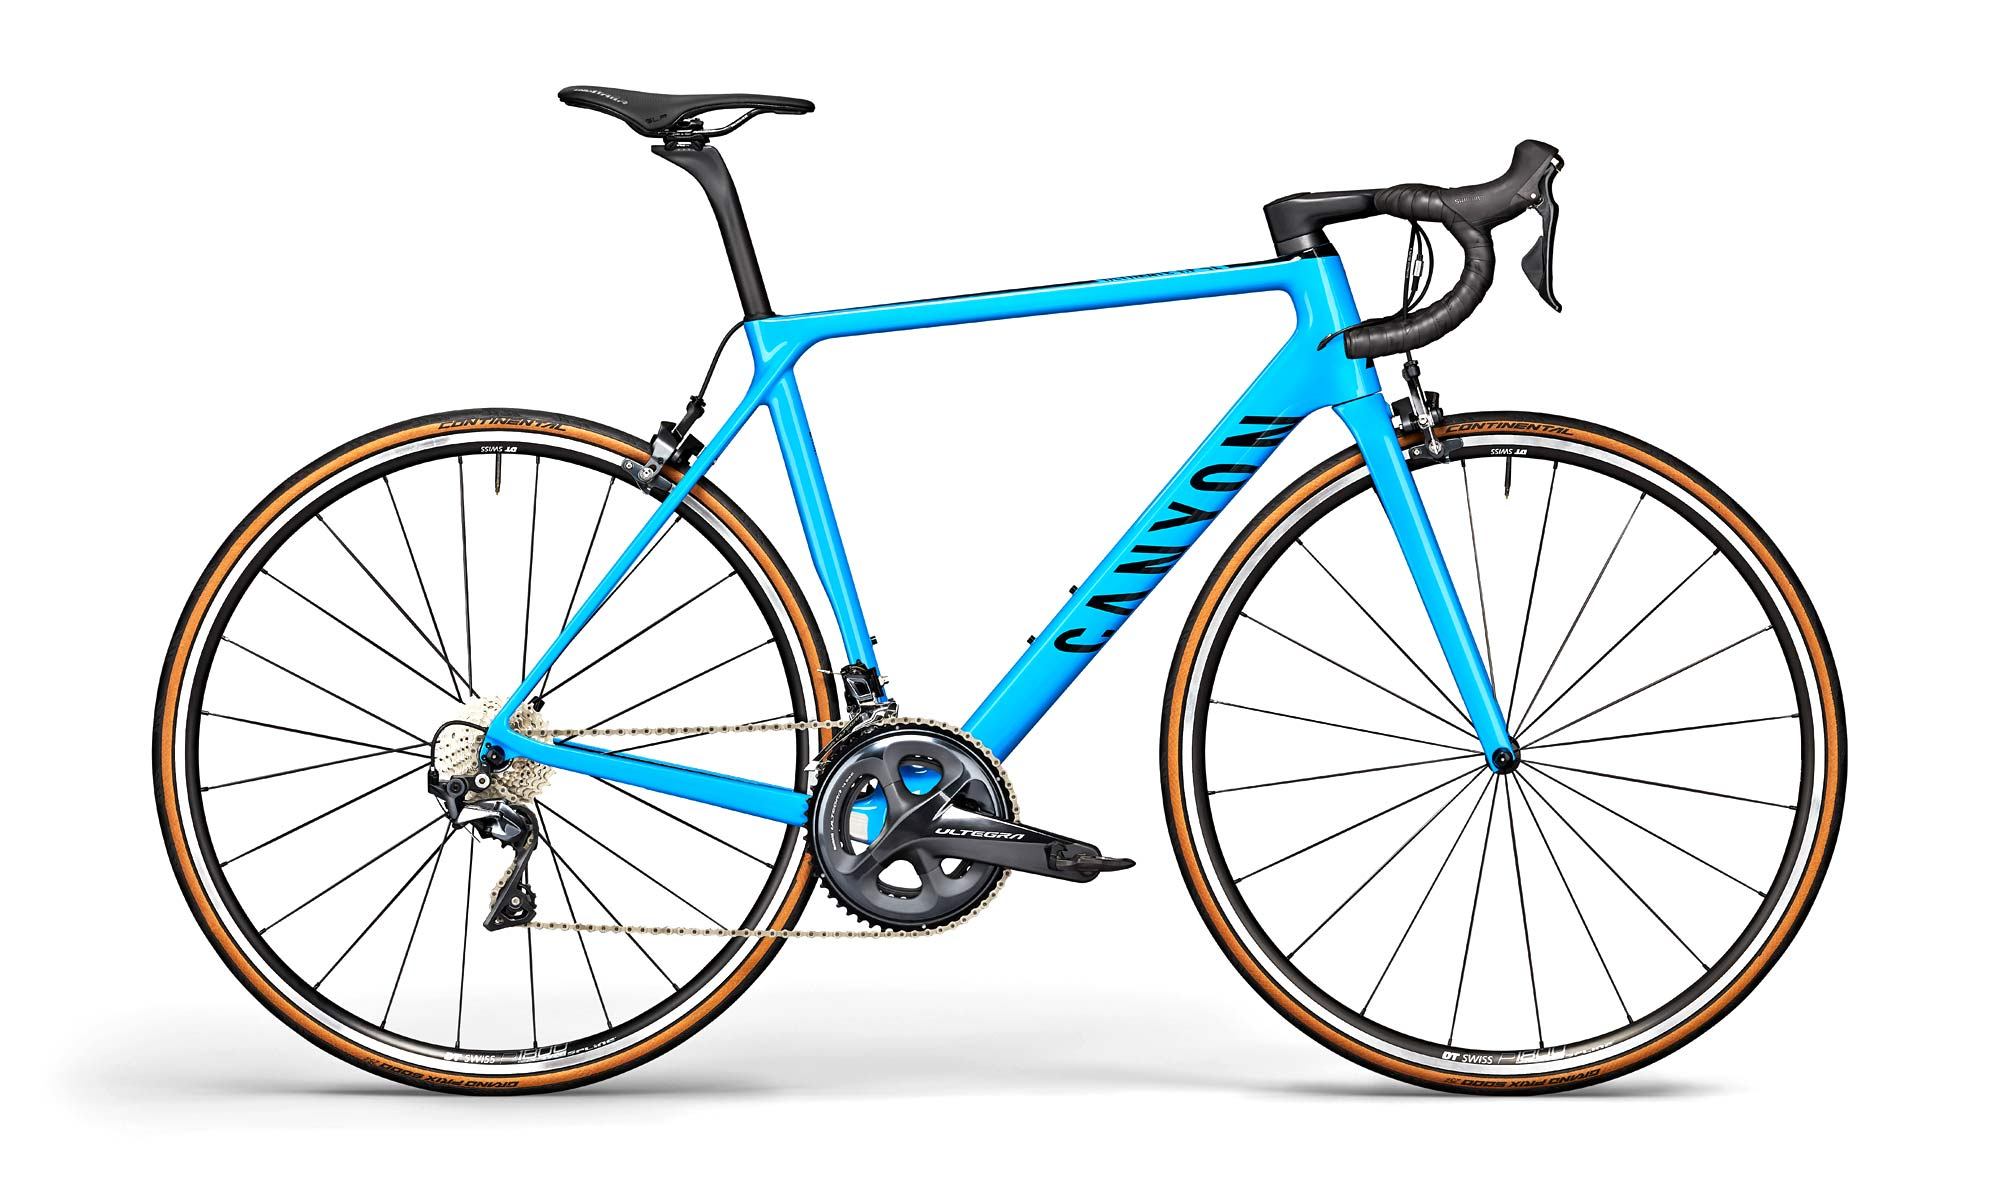 2021 Canyon Ultimate CF SL rim brake road bike, SL 8